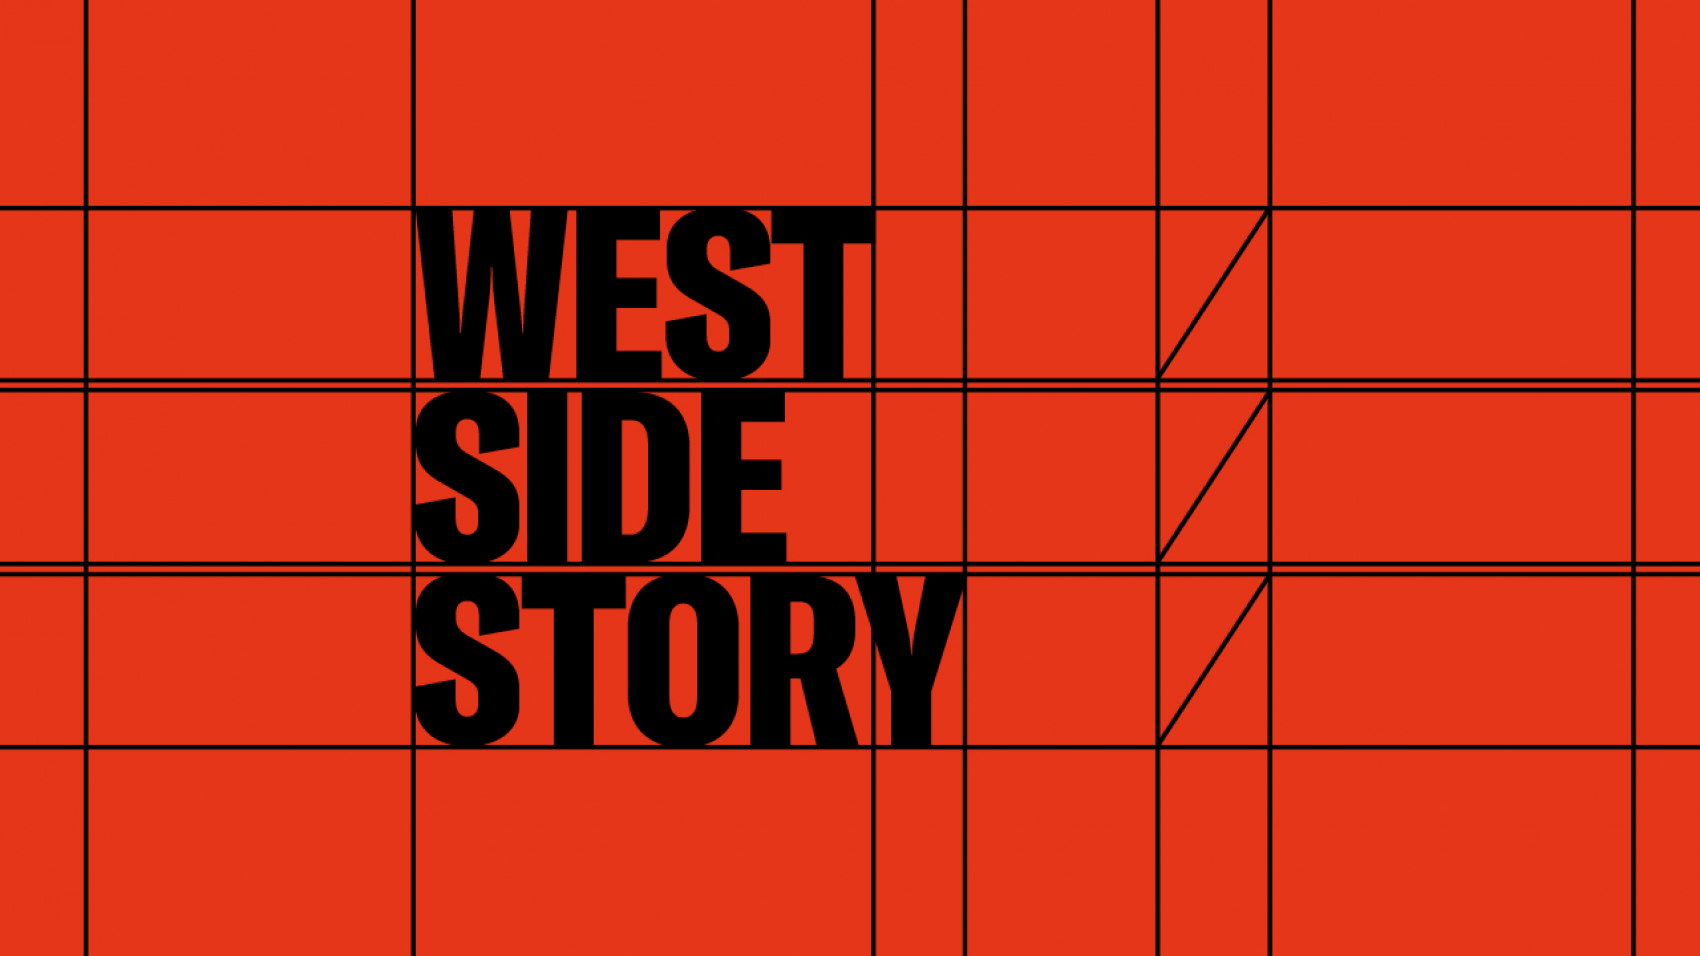 West Side Story en Broadway klassiekers